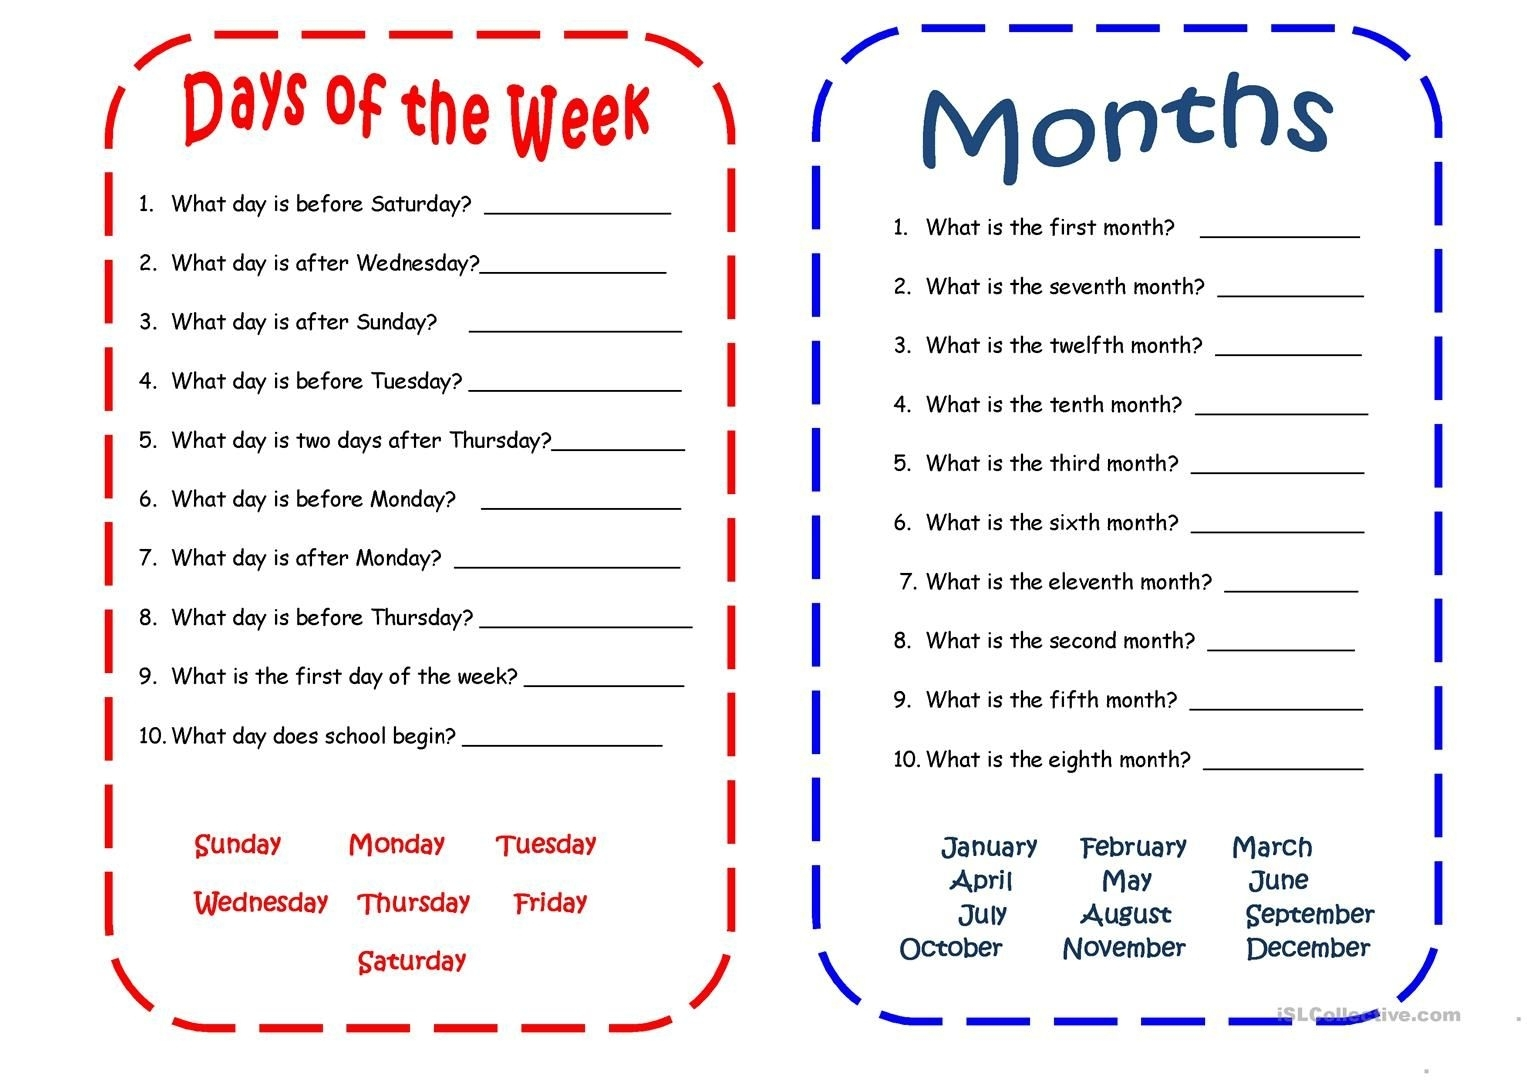 Days And Months Worksheet - Free Esl Printable Worksheets Made with regard to Days Of The Month Images